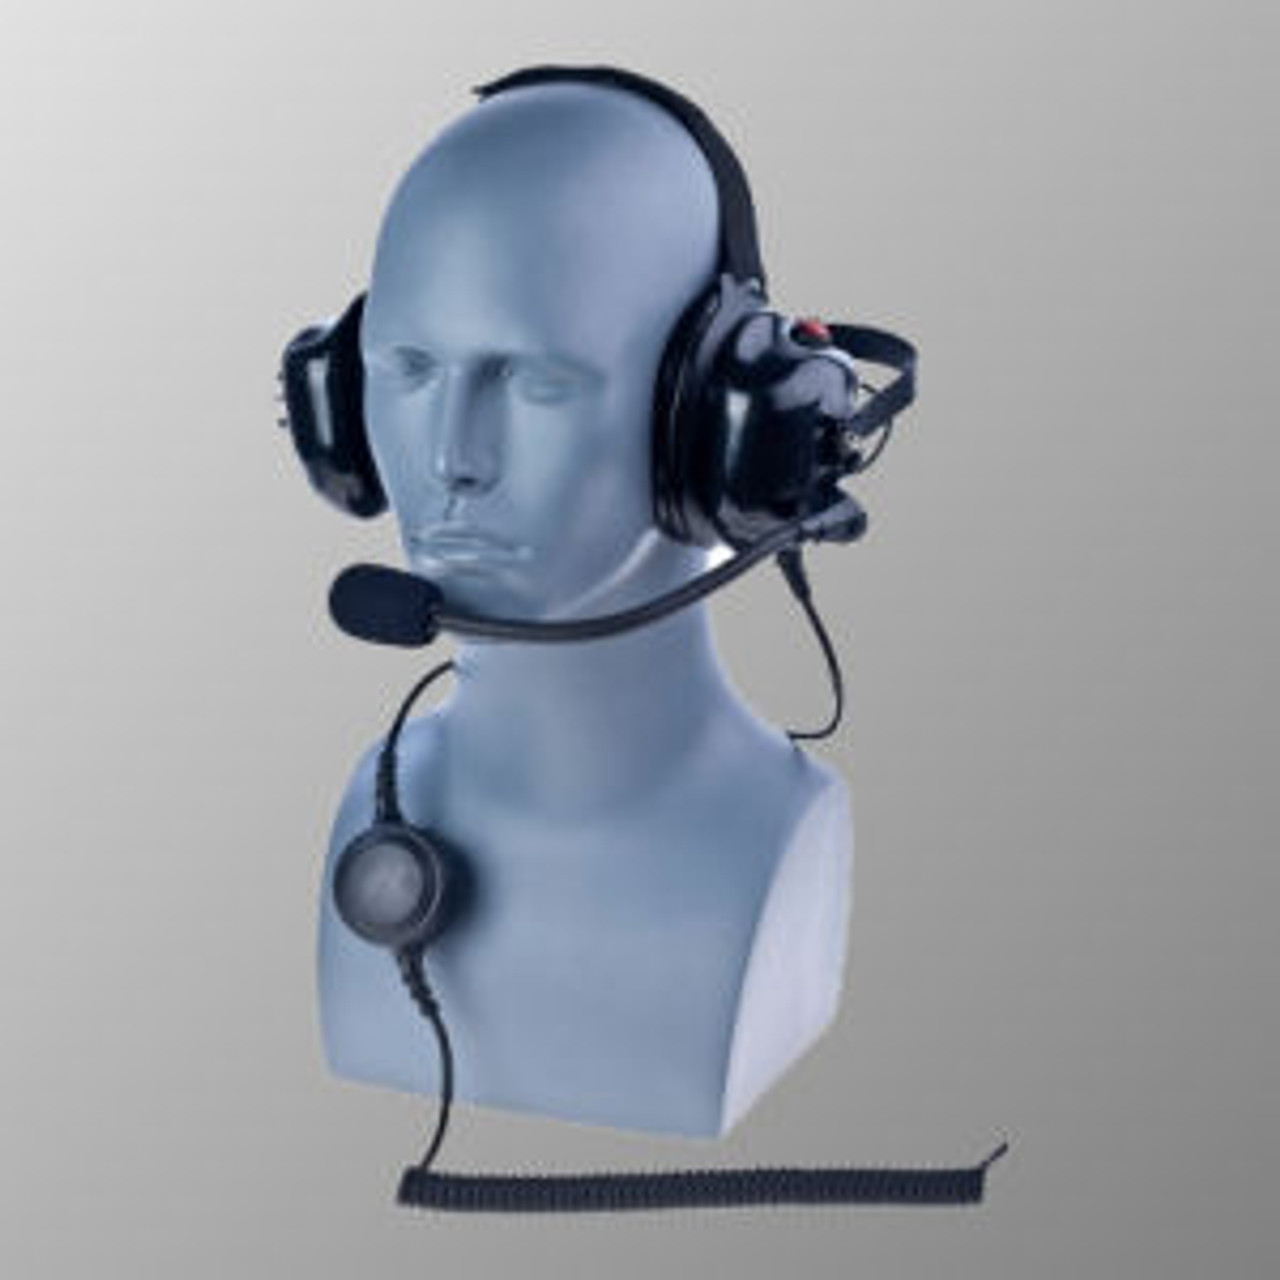 Kenwood NX-3220 Noise Canceling Behind The Head Double Muff Headset